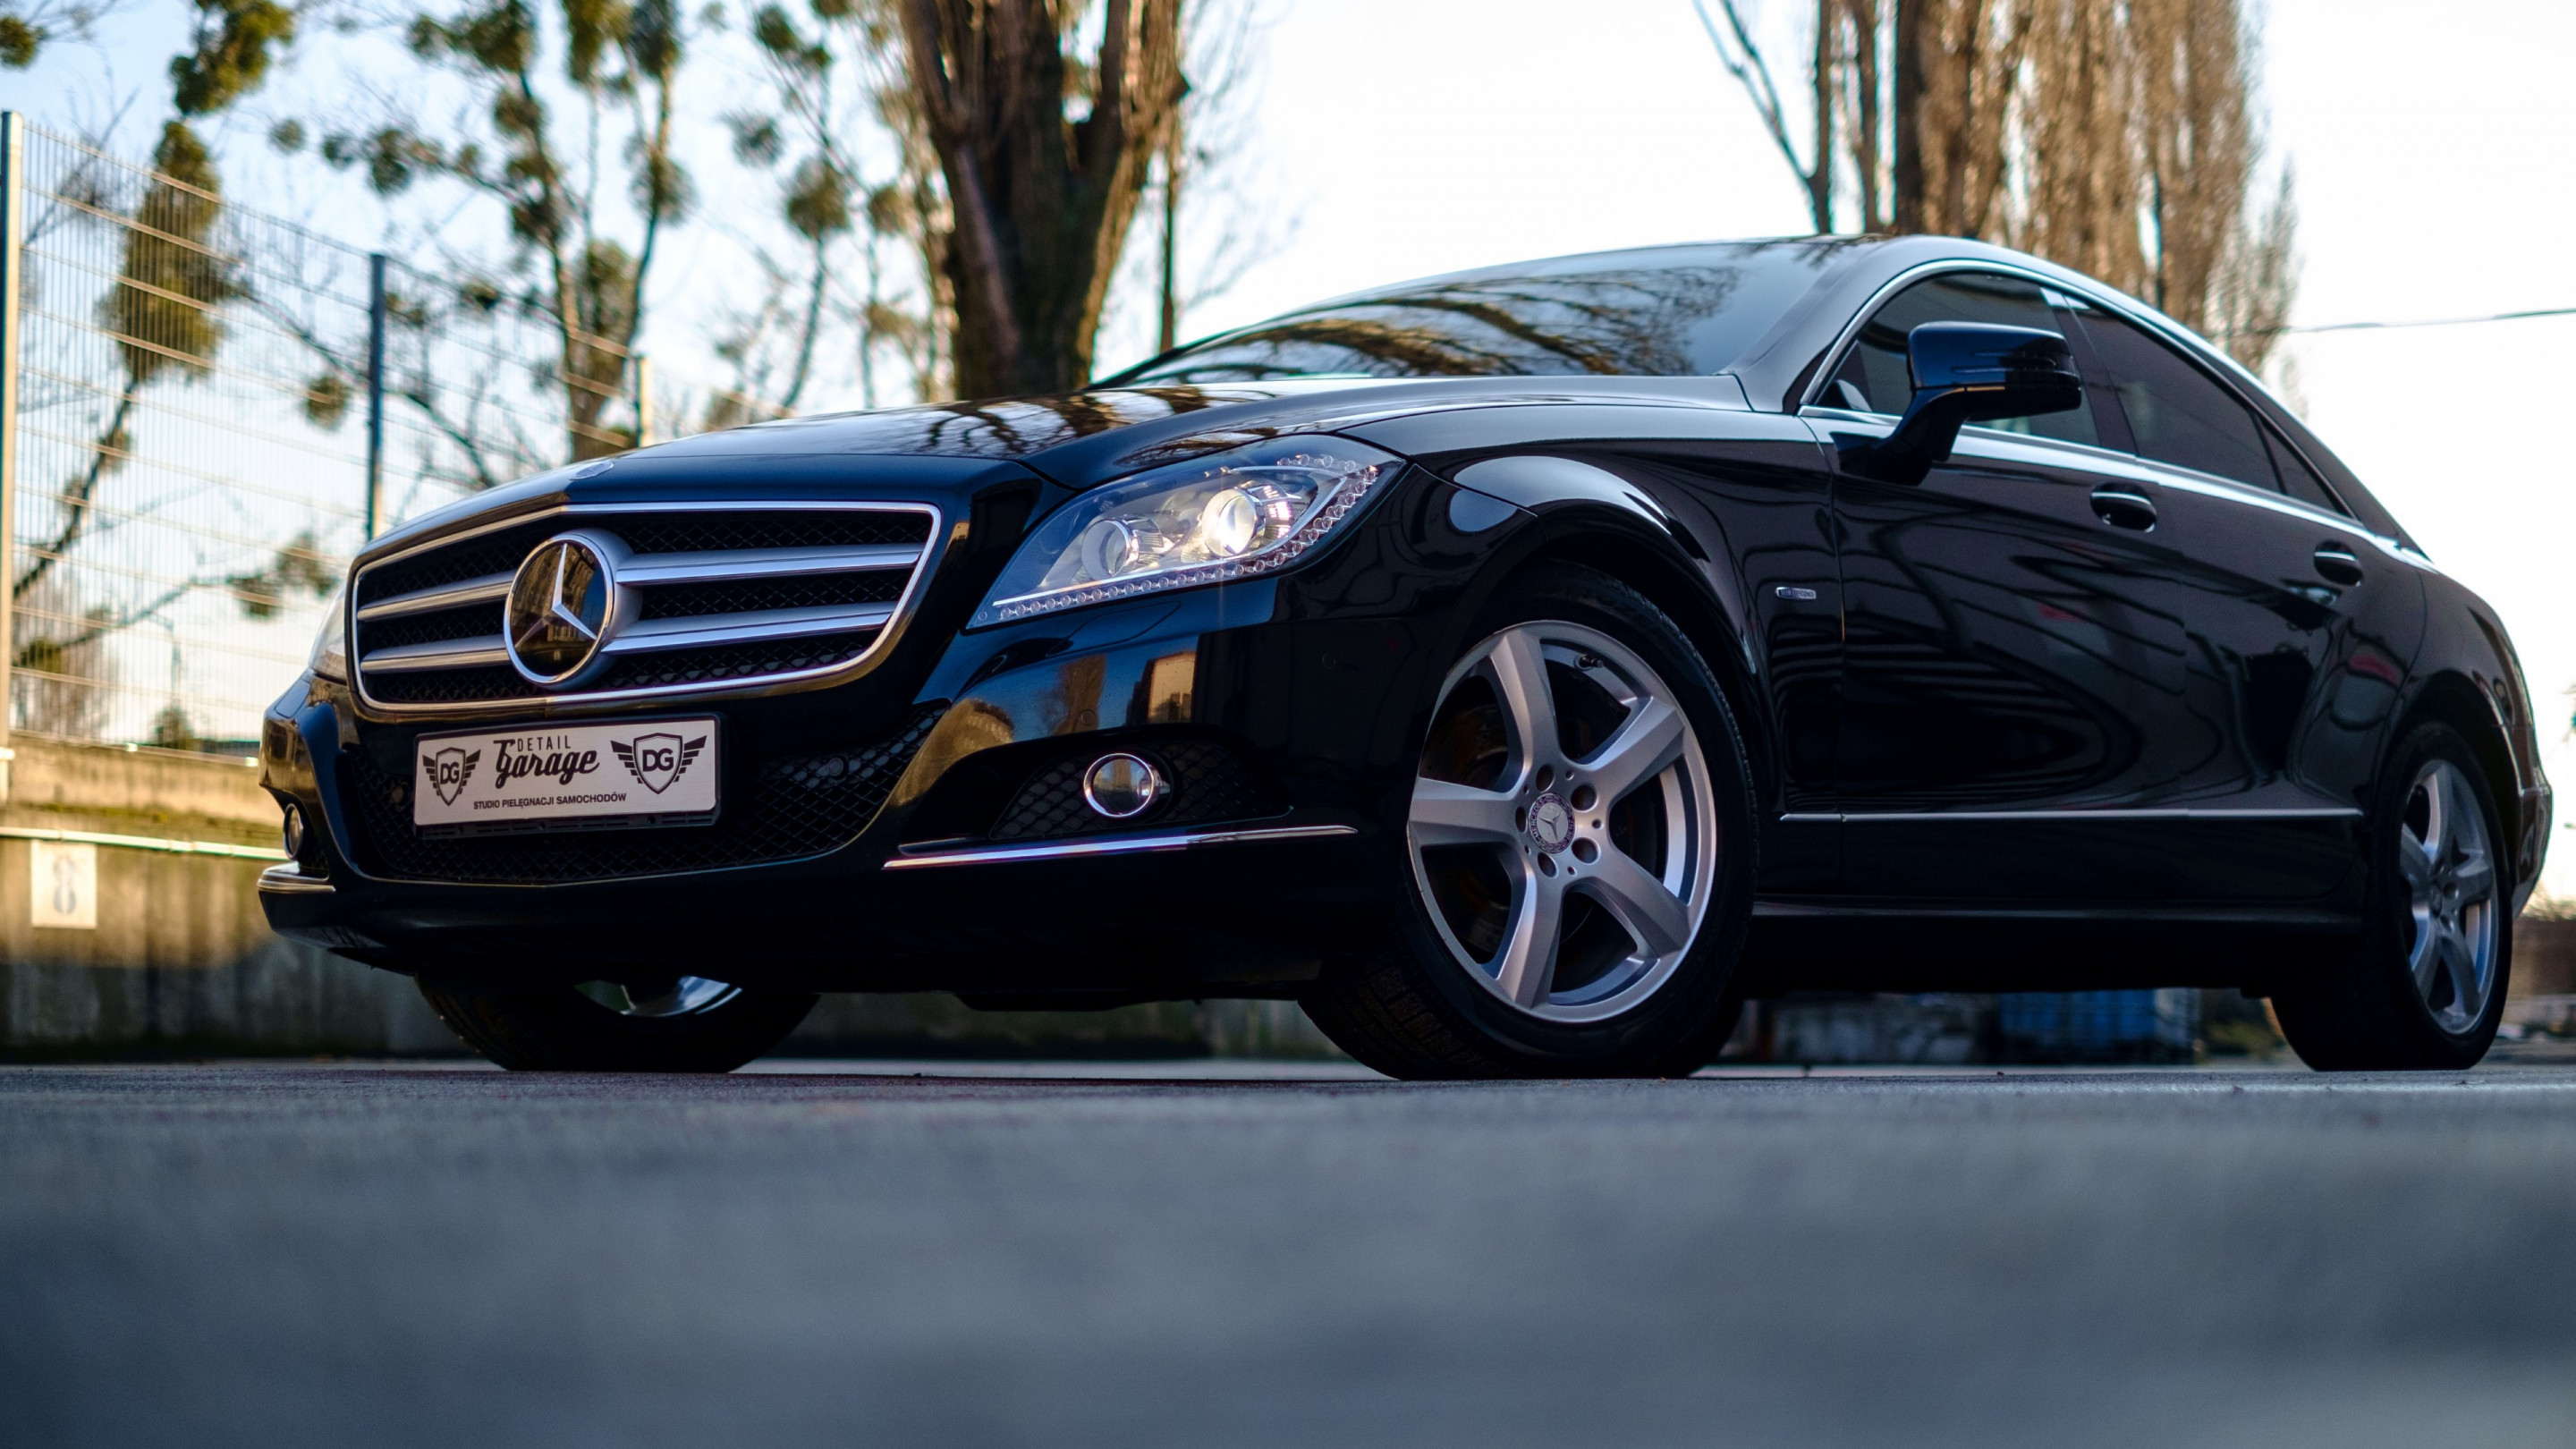 Mercedes Benz CLS wallpaper 2880x1620